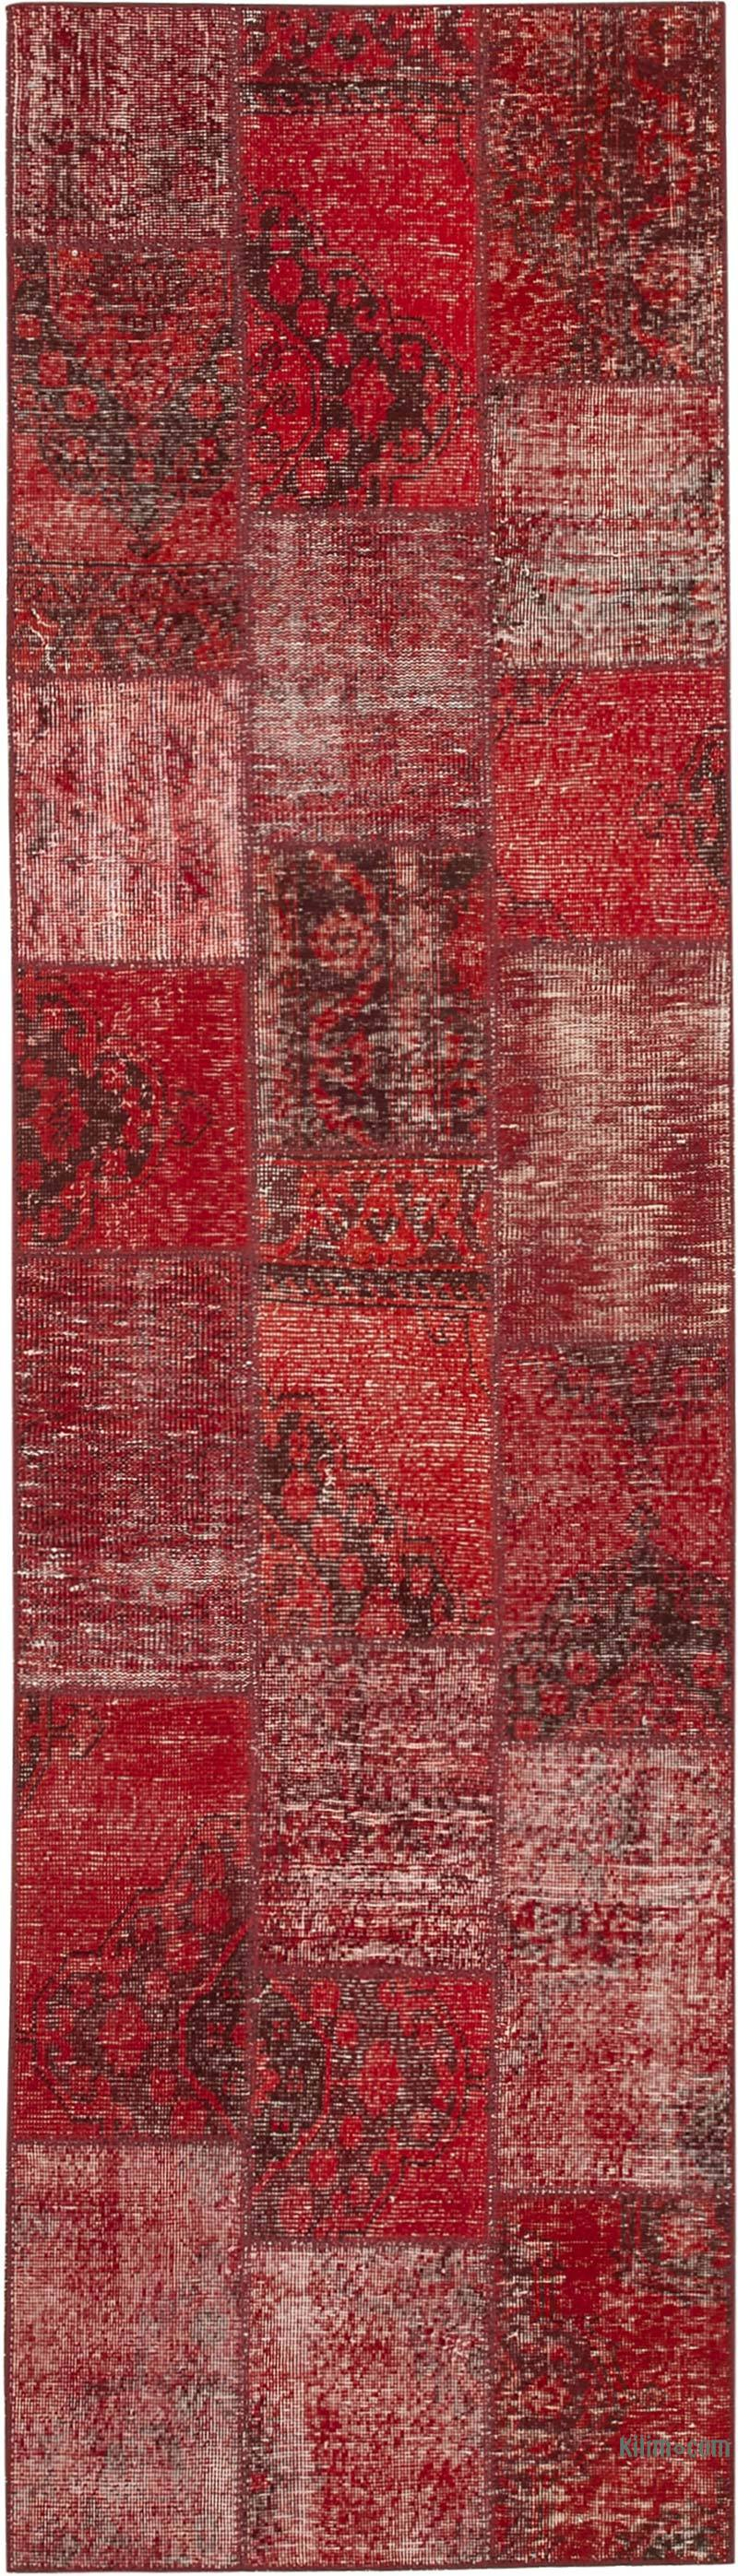 """Red Patchwork Hand-Knotted Turkish Runner - 2' 9"""" x 9' 11"""" (33 in. x 119 in.) - K0053936"""